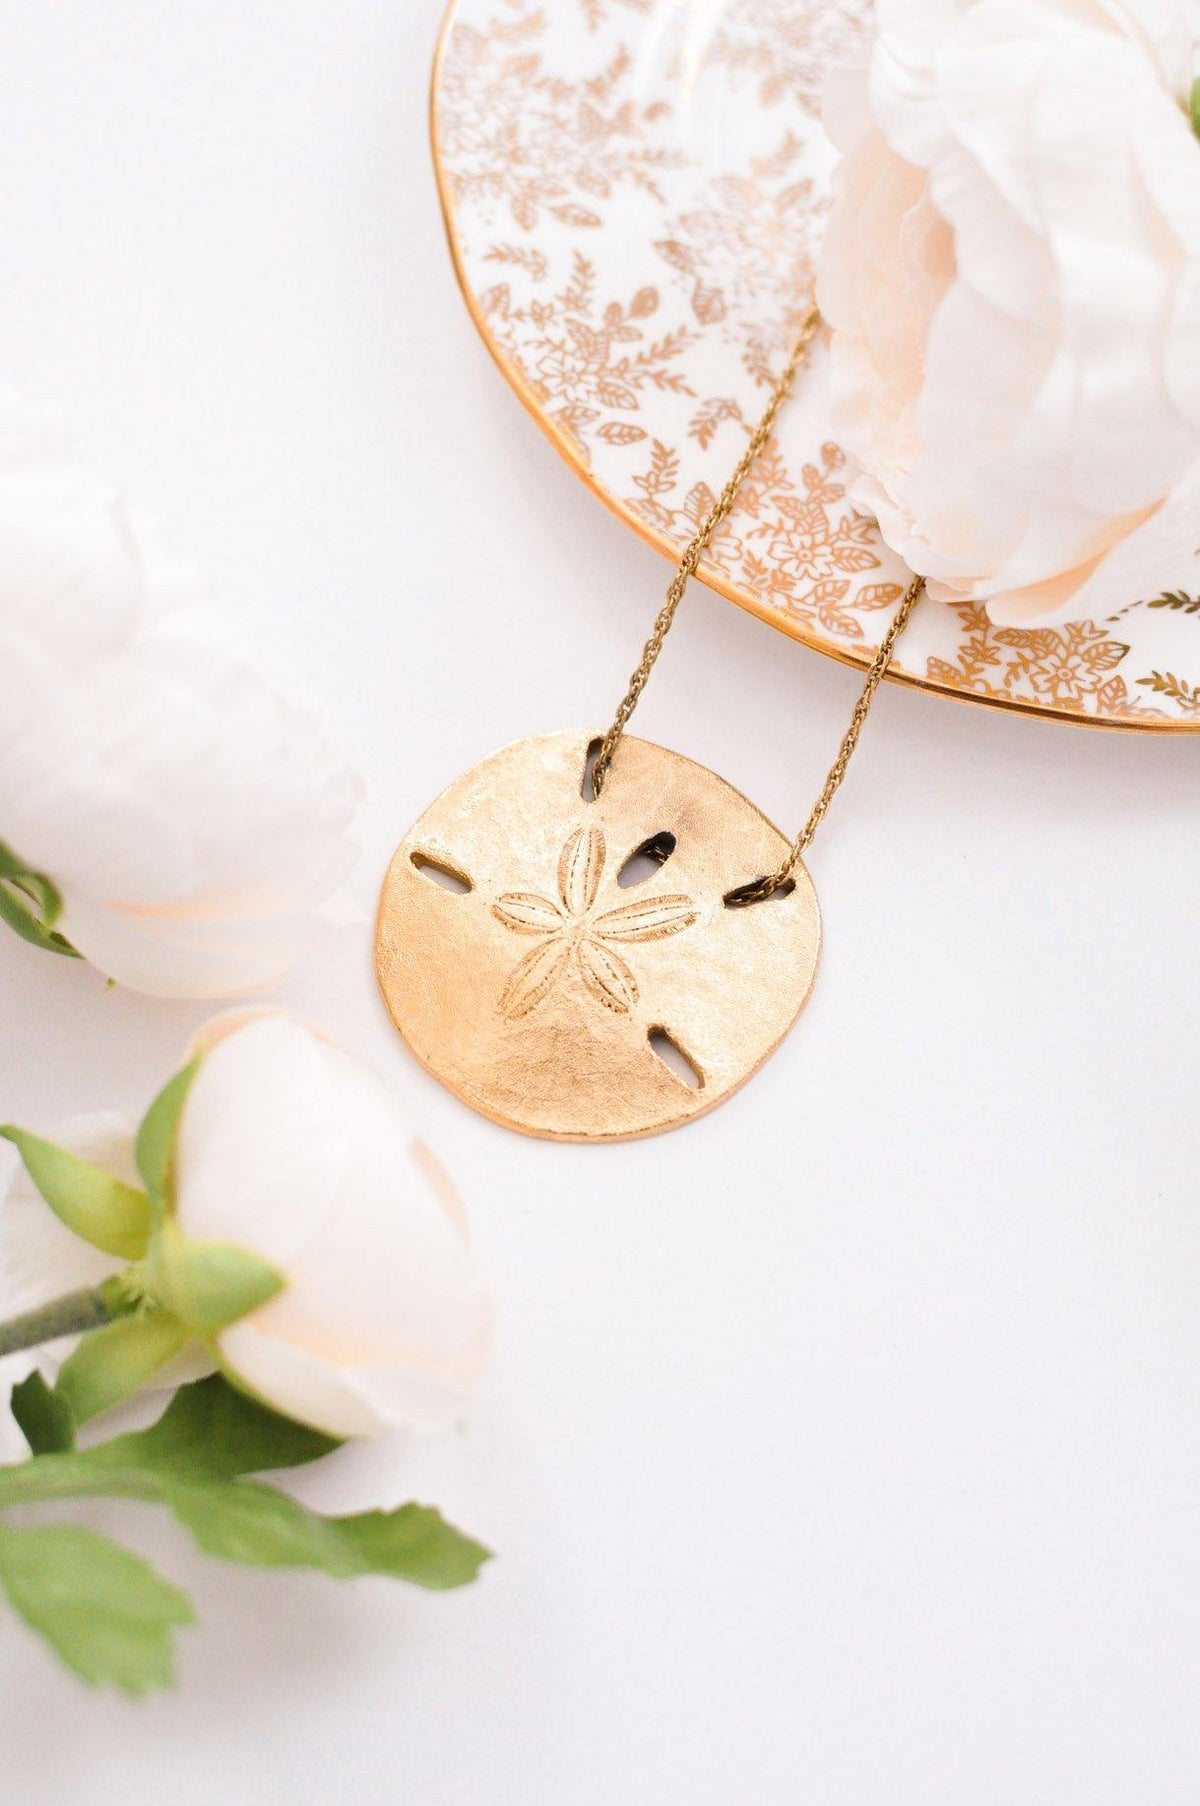 Vintage Large Sand Dollar Pendant Necklace from Sweet and Spark.